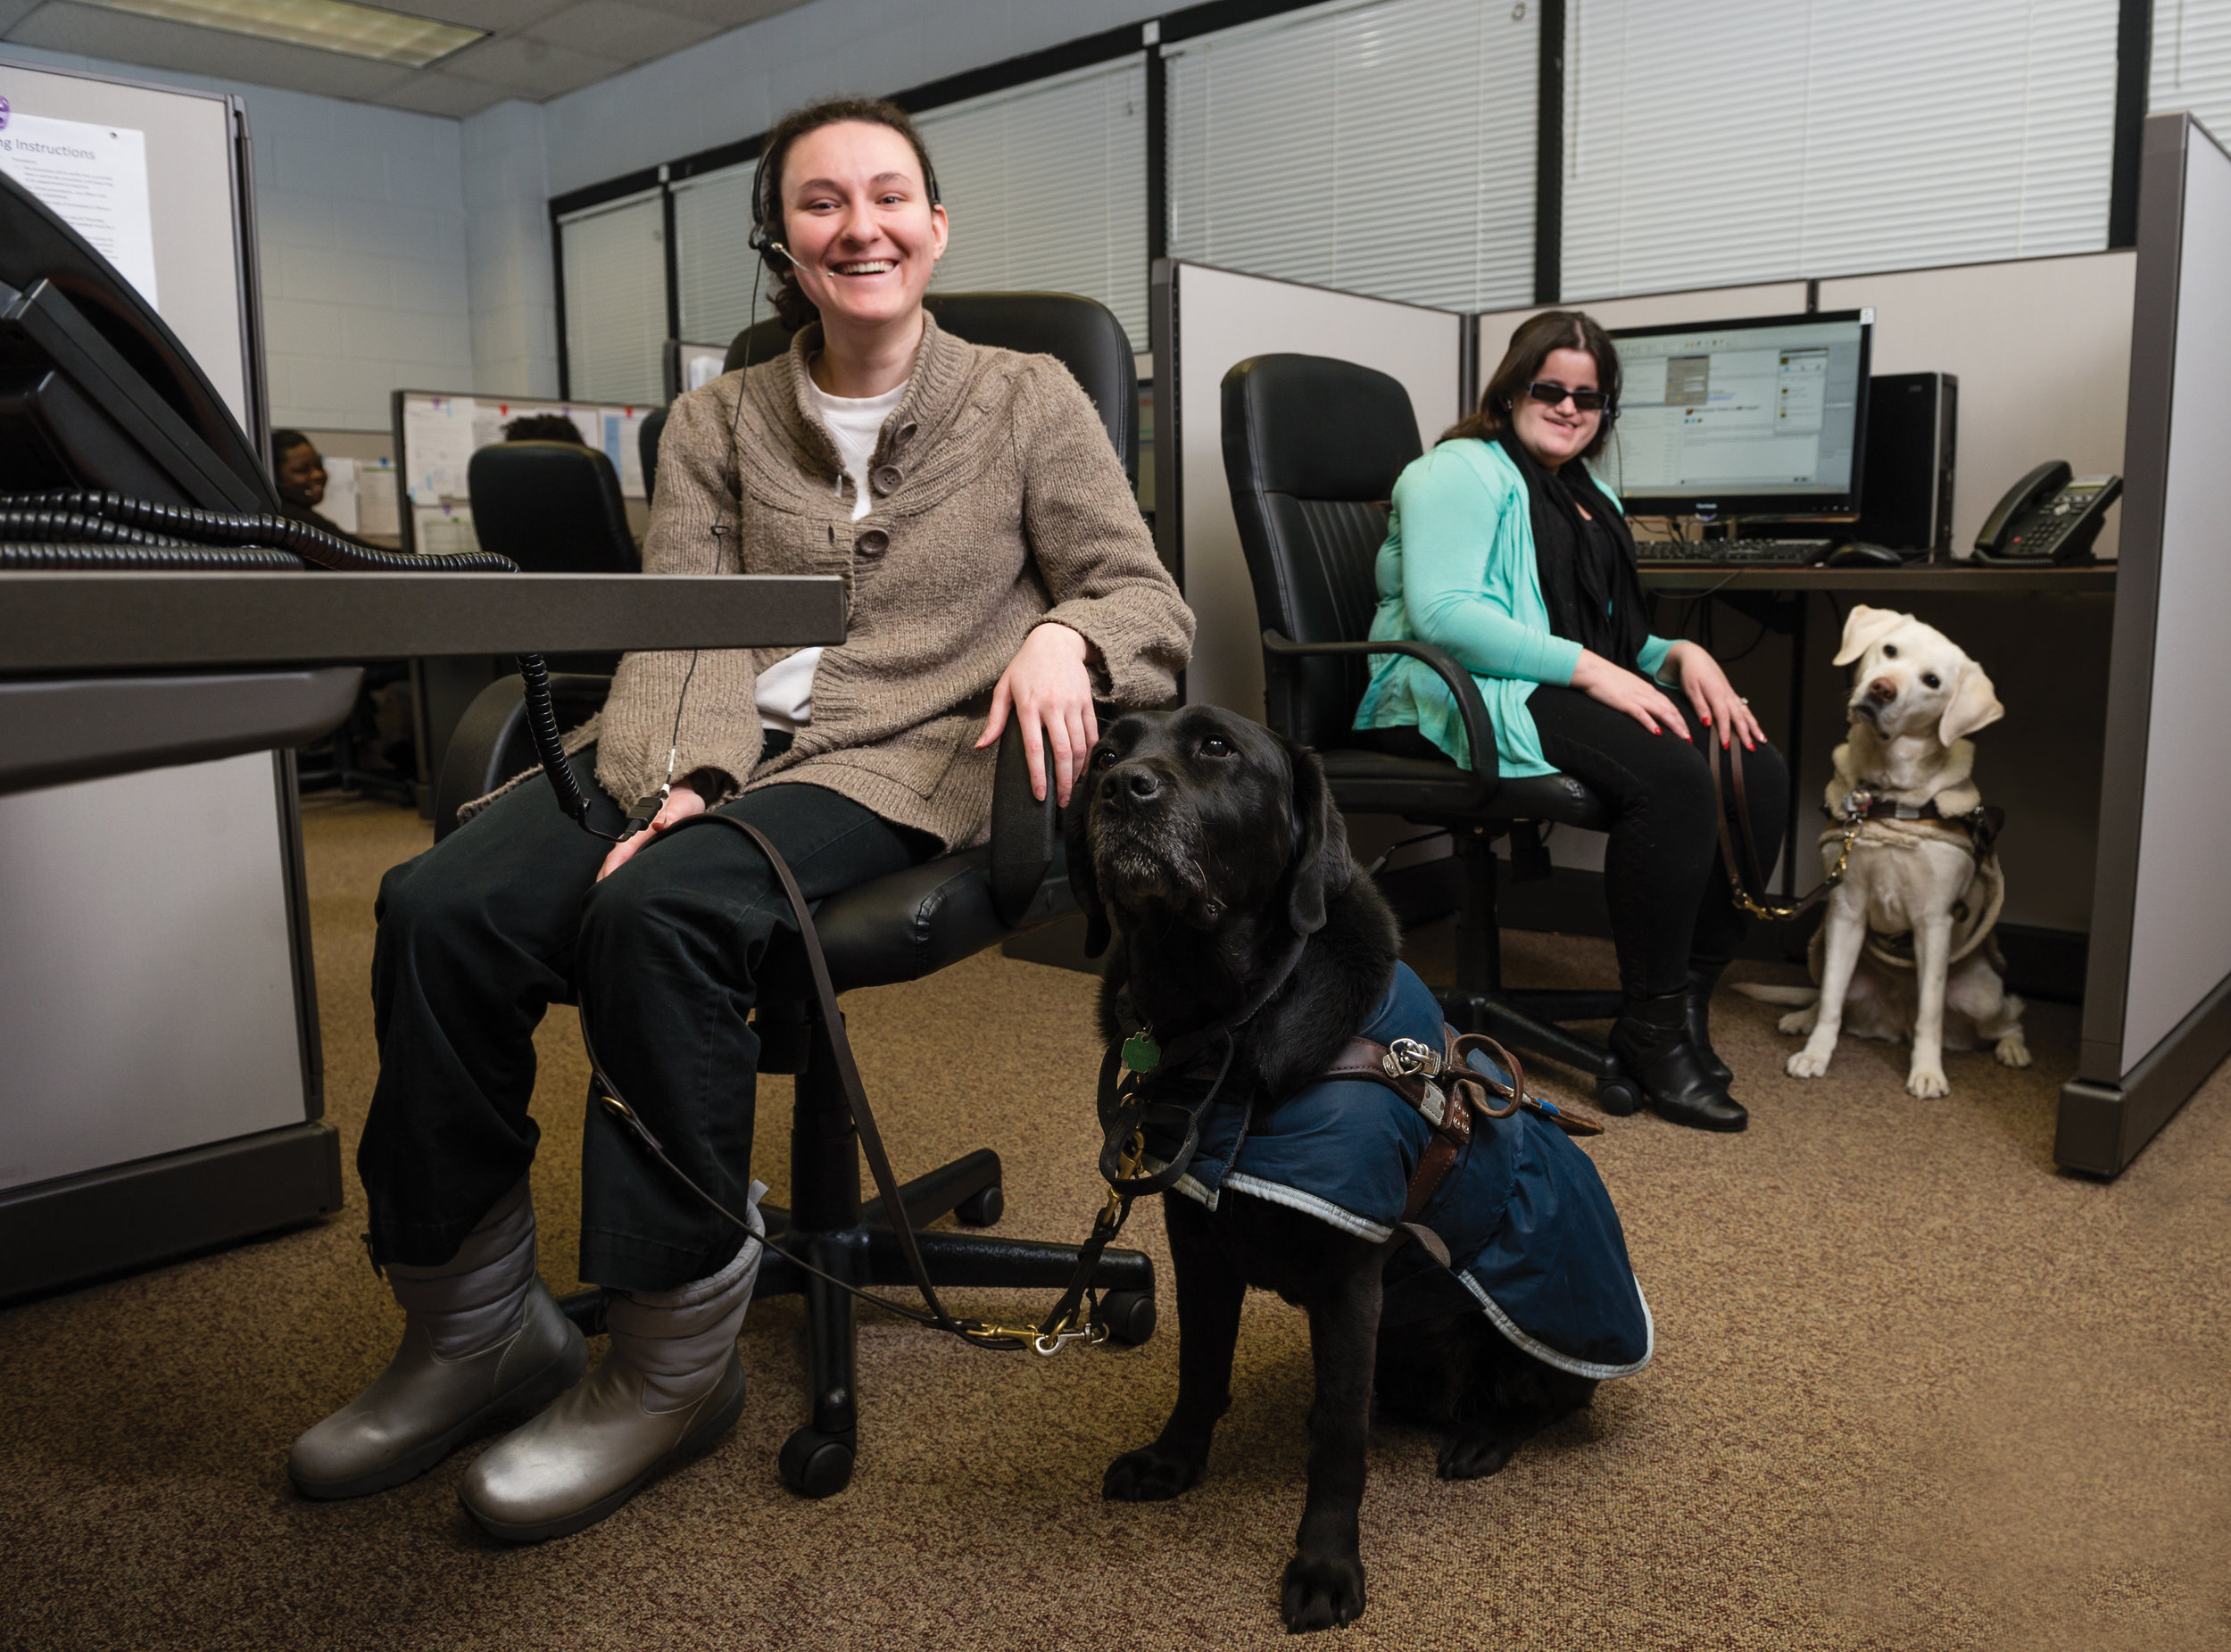 Lighthouse call center employees pose at their stations, each with their trusted guide dogs by their sides.